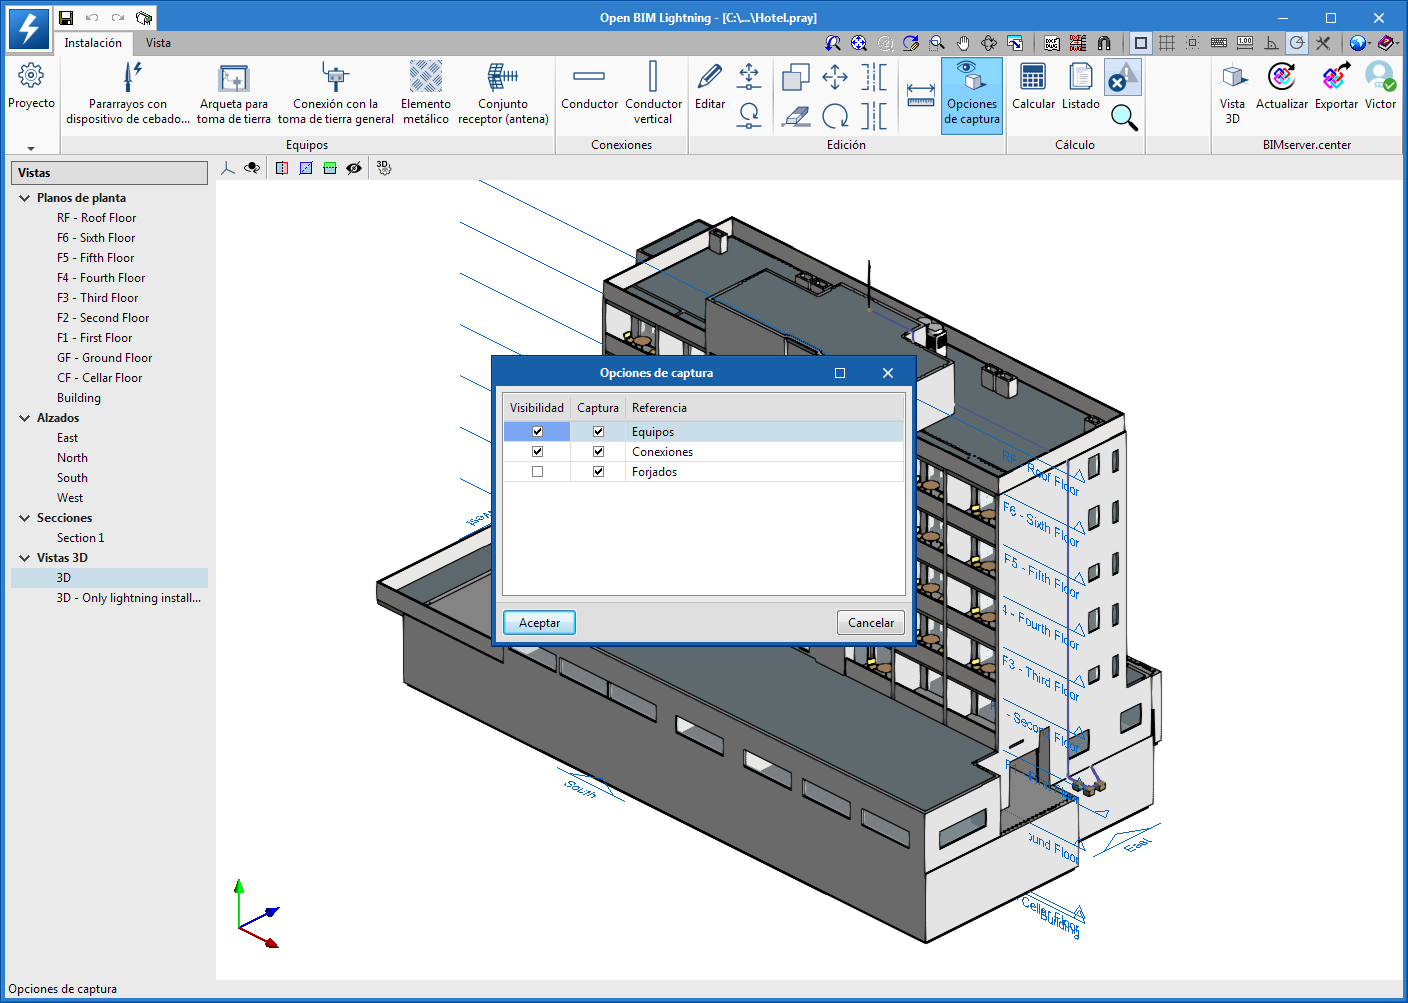 Open BIM Lighting. Improvements in the 3D environment of the application